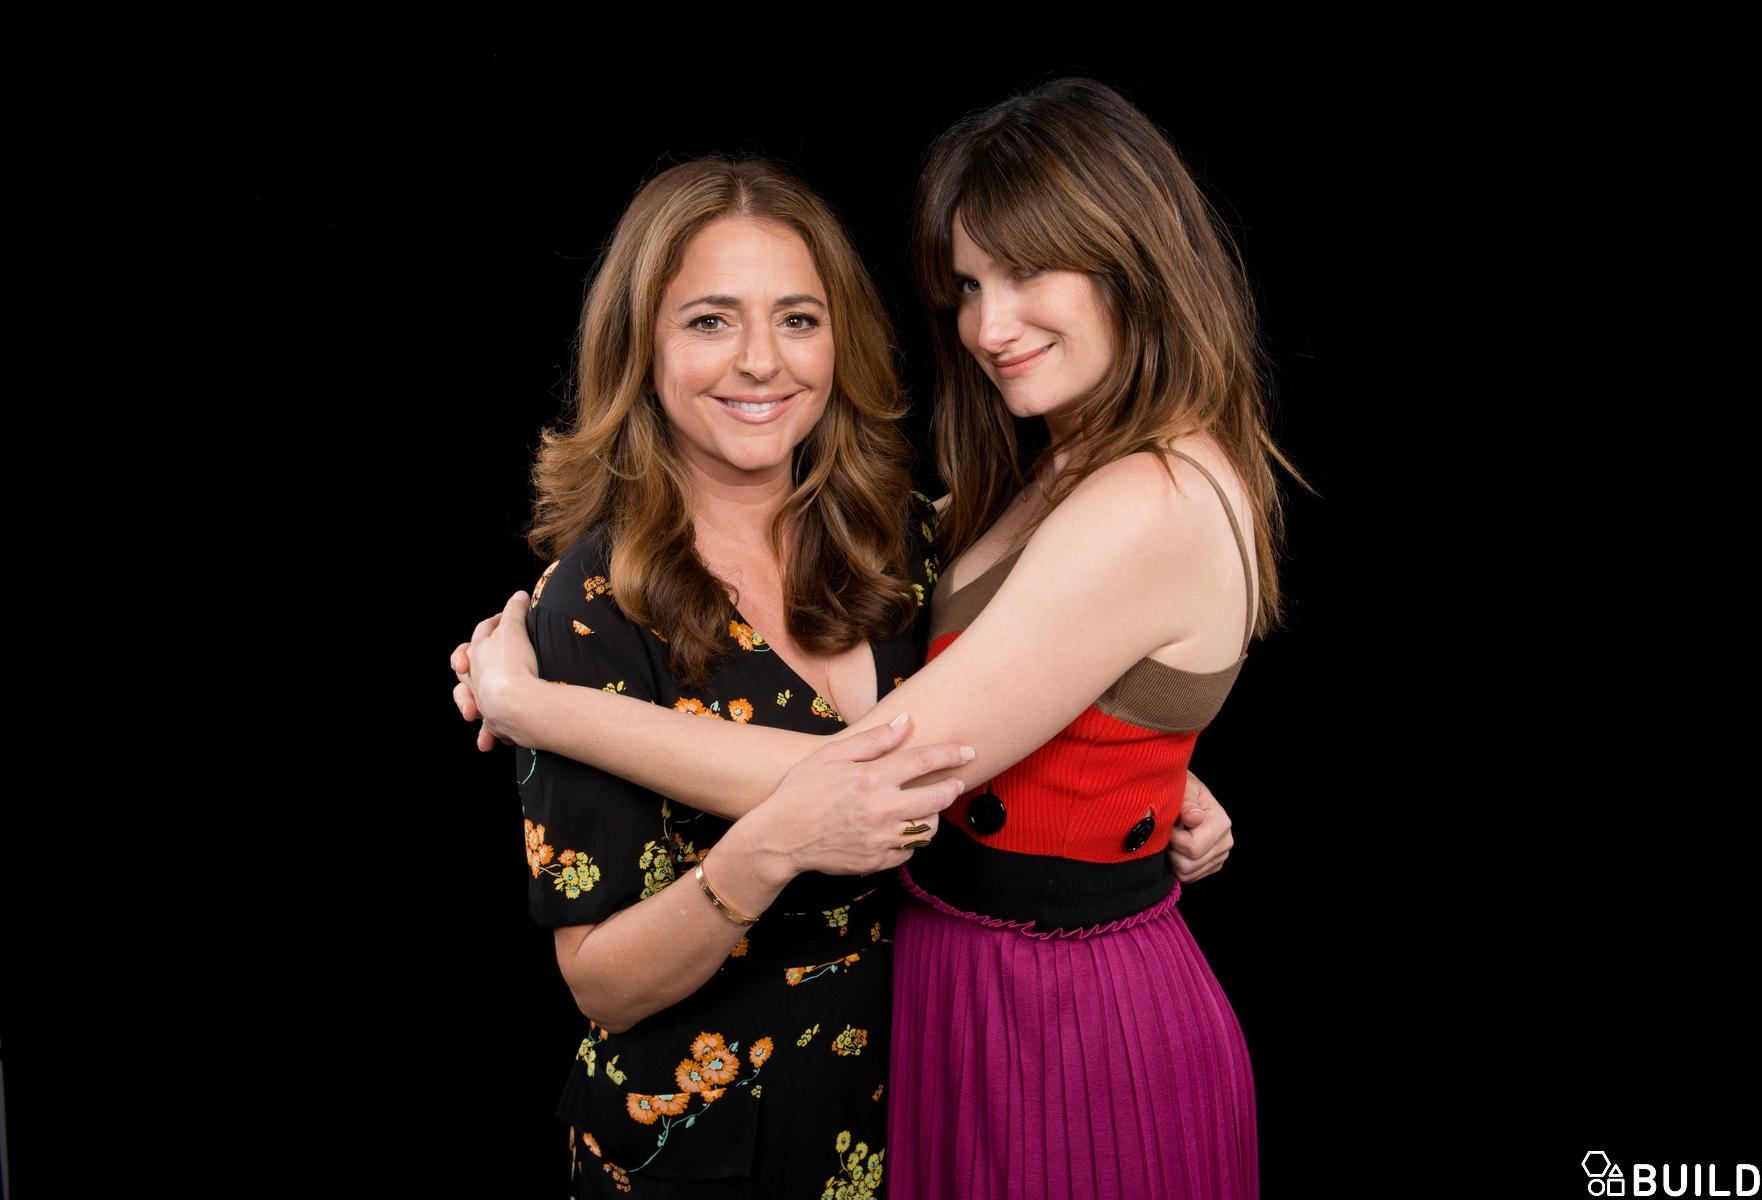 Kathryn Hahn and Annie Mumolo visit AOL Hq for Build on July 19, 2016 in New York. Photos by Noam Galai